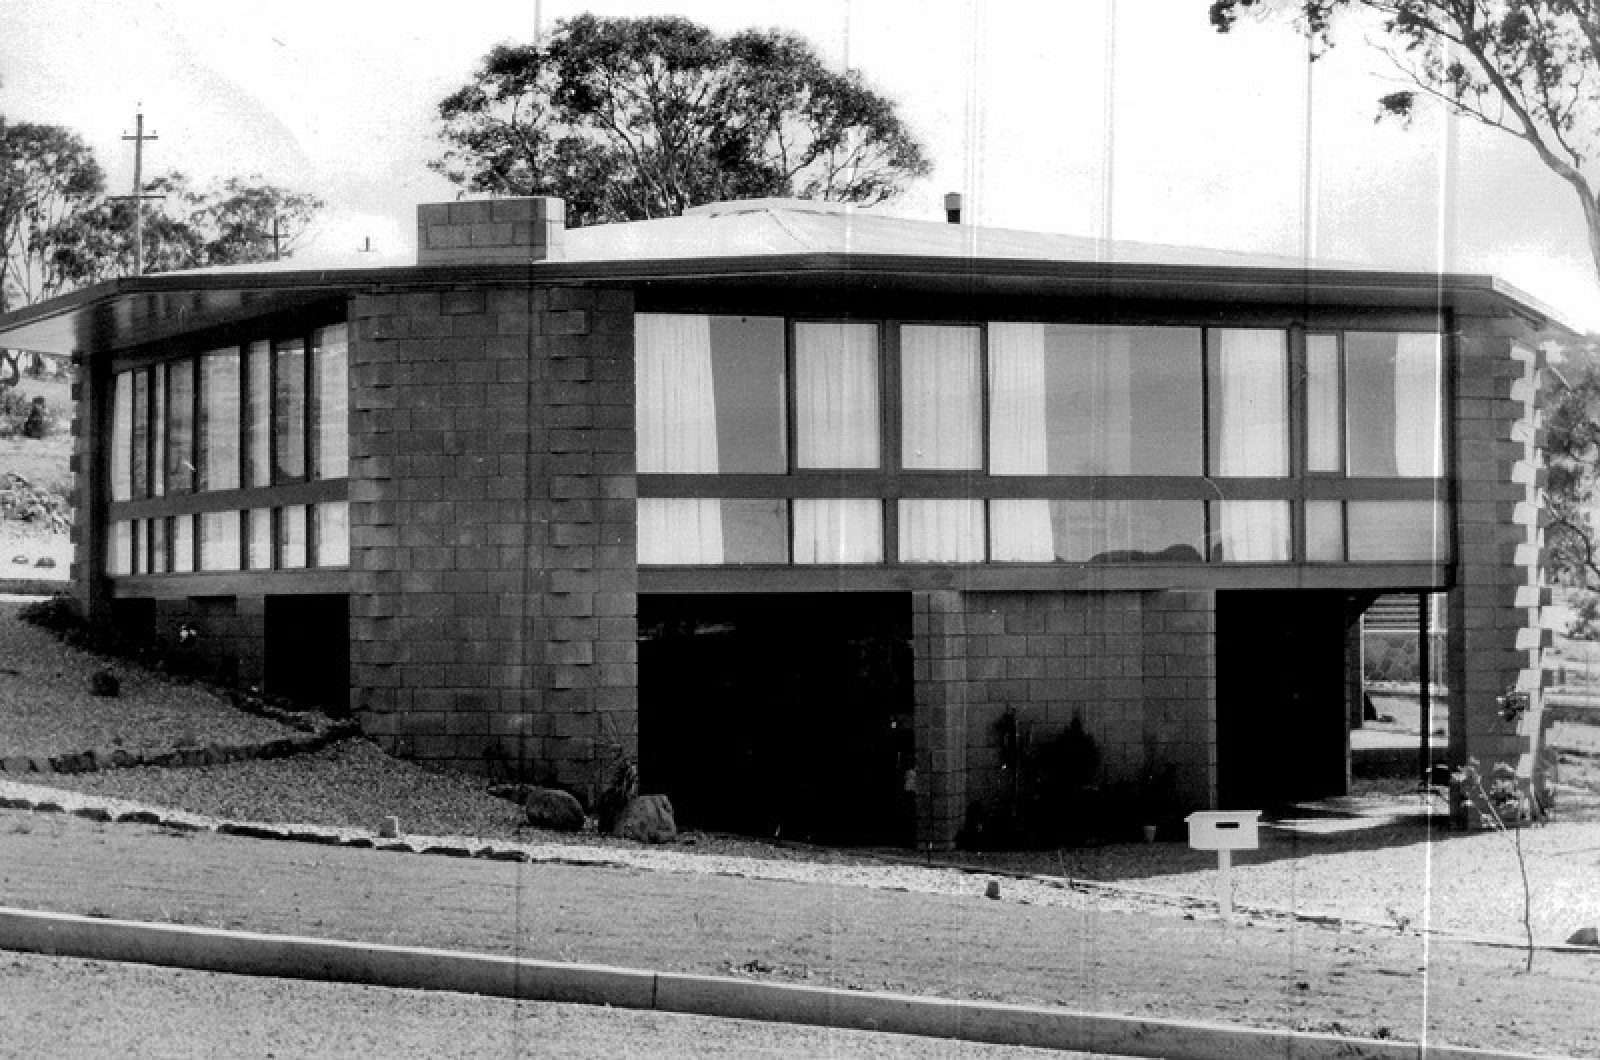 Verge House, Robin Boyd.